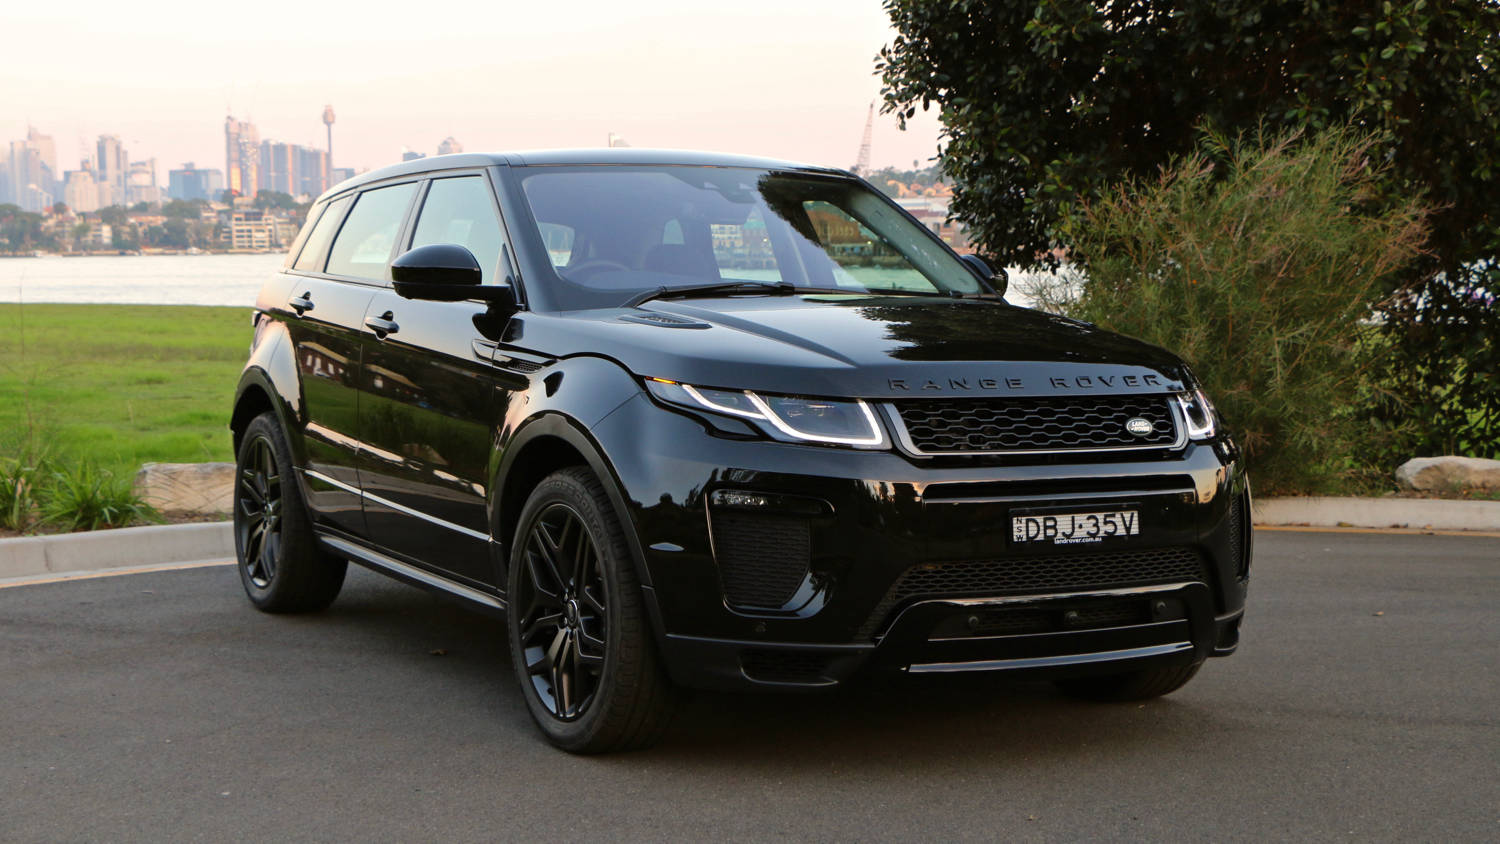 range rover evoque 2016 review chasing cars. Black Bedroom Furniture Sets. Home Design Ideas